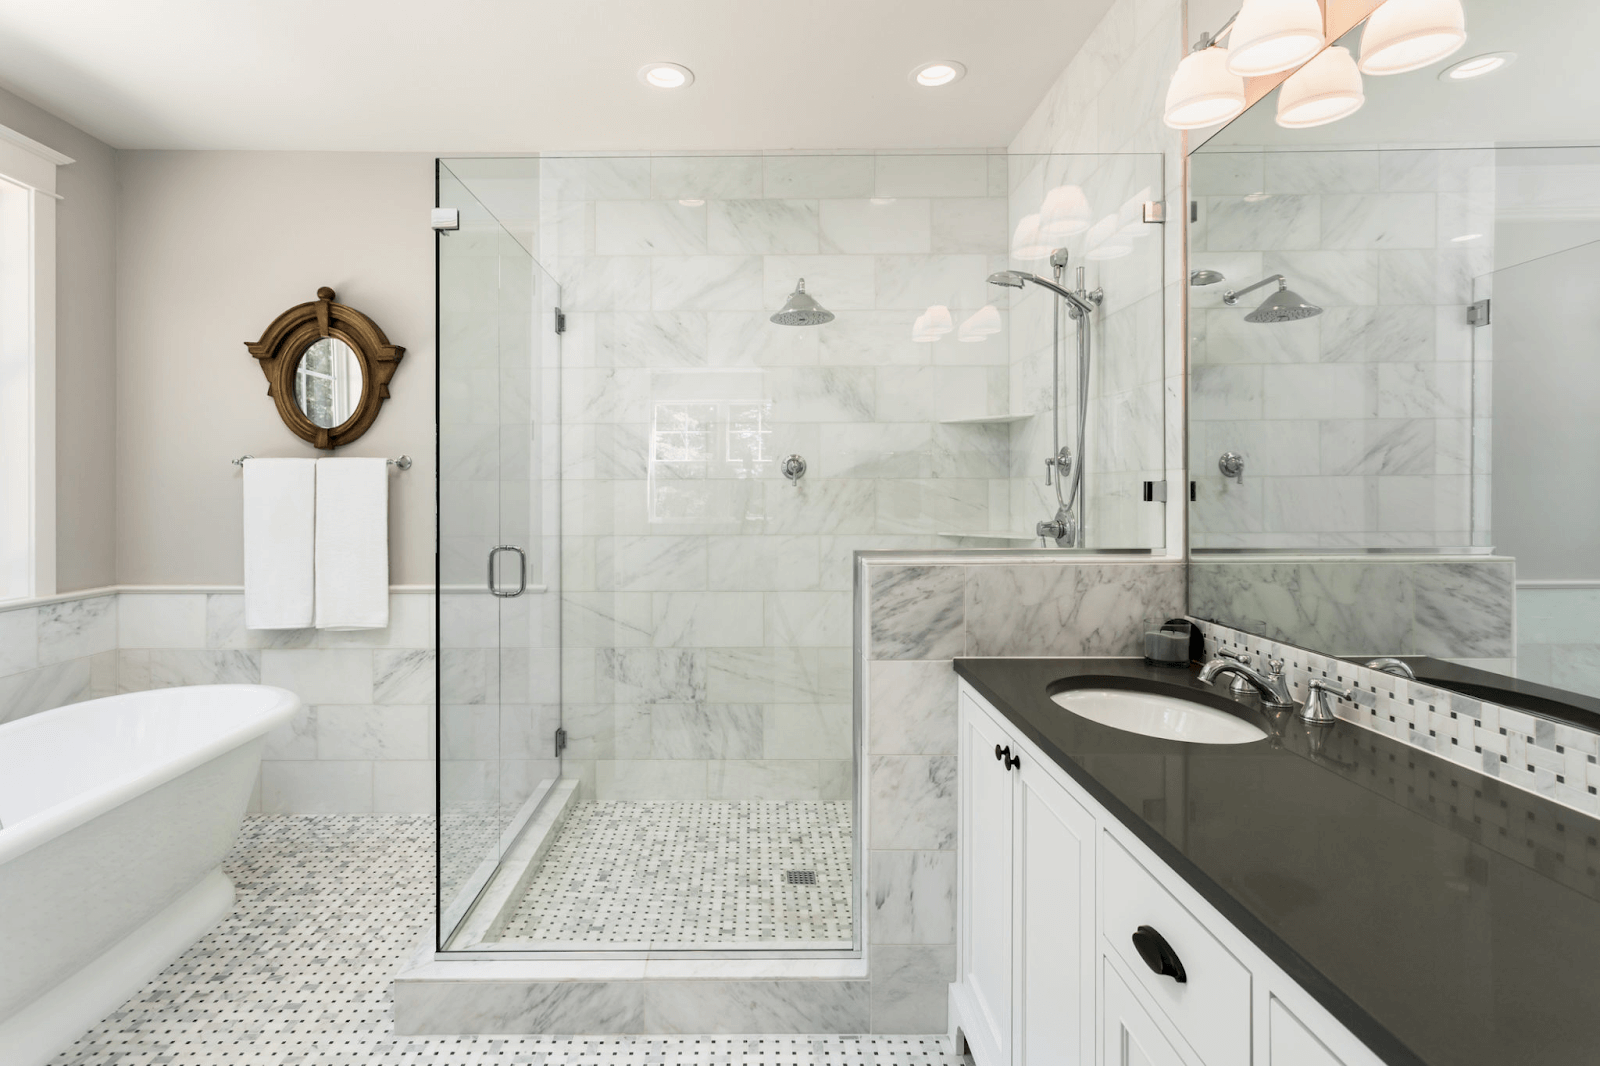 Shower tile walls advise dress for summer in 2019